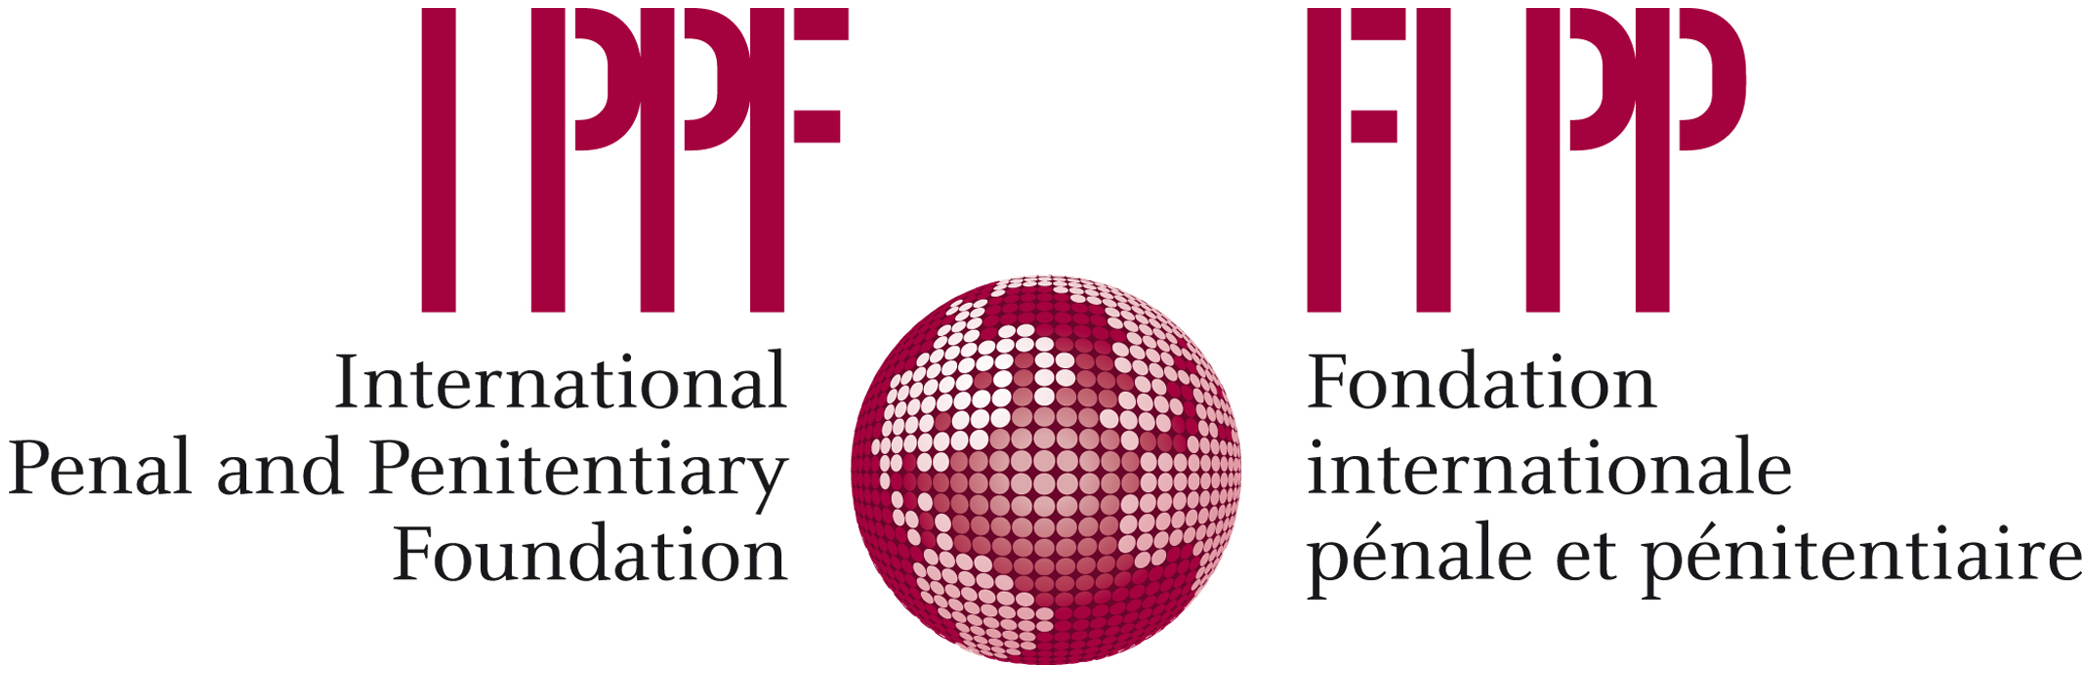 logo for International Penal and Penitentiary Foundation